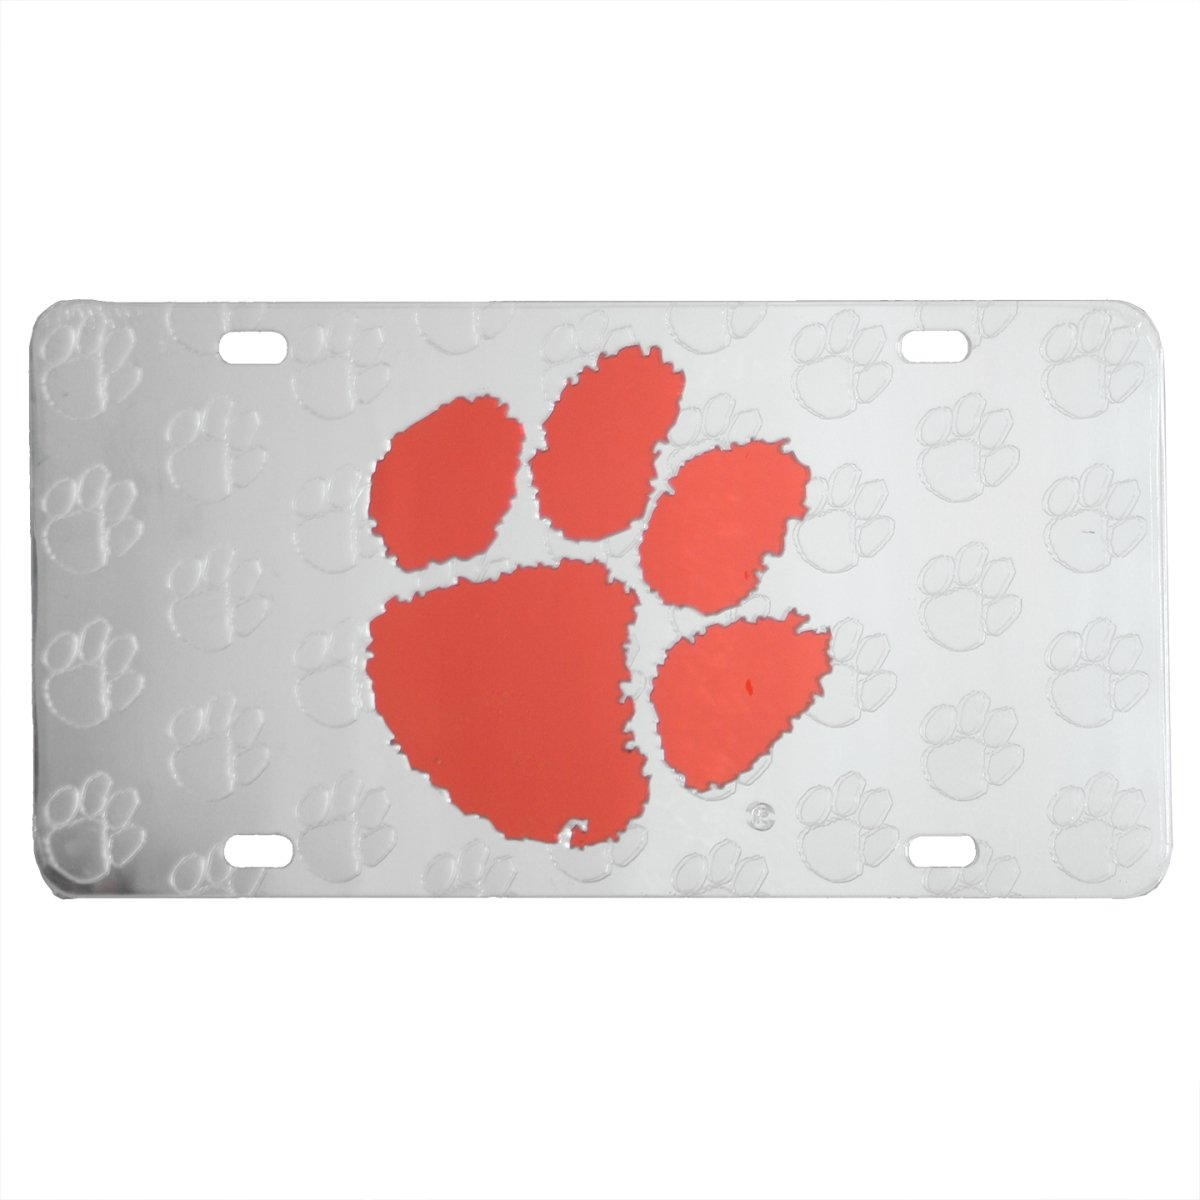 Car Tag Laser Cut Silver With Orange Paw & All Over Etched Paws - Mr. Knickerbocker